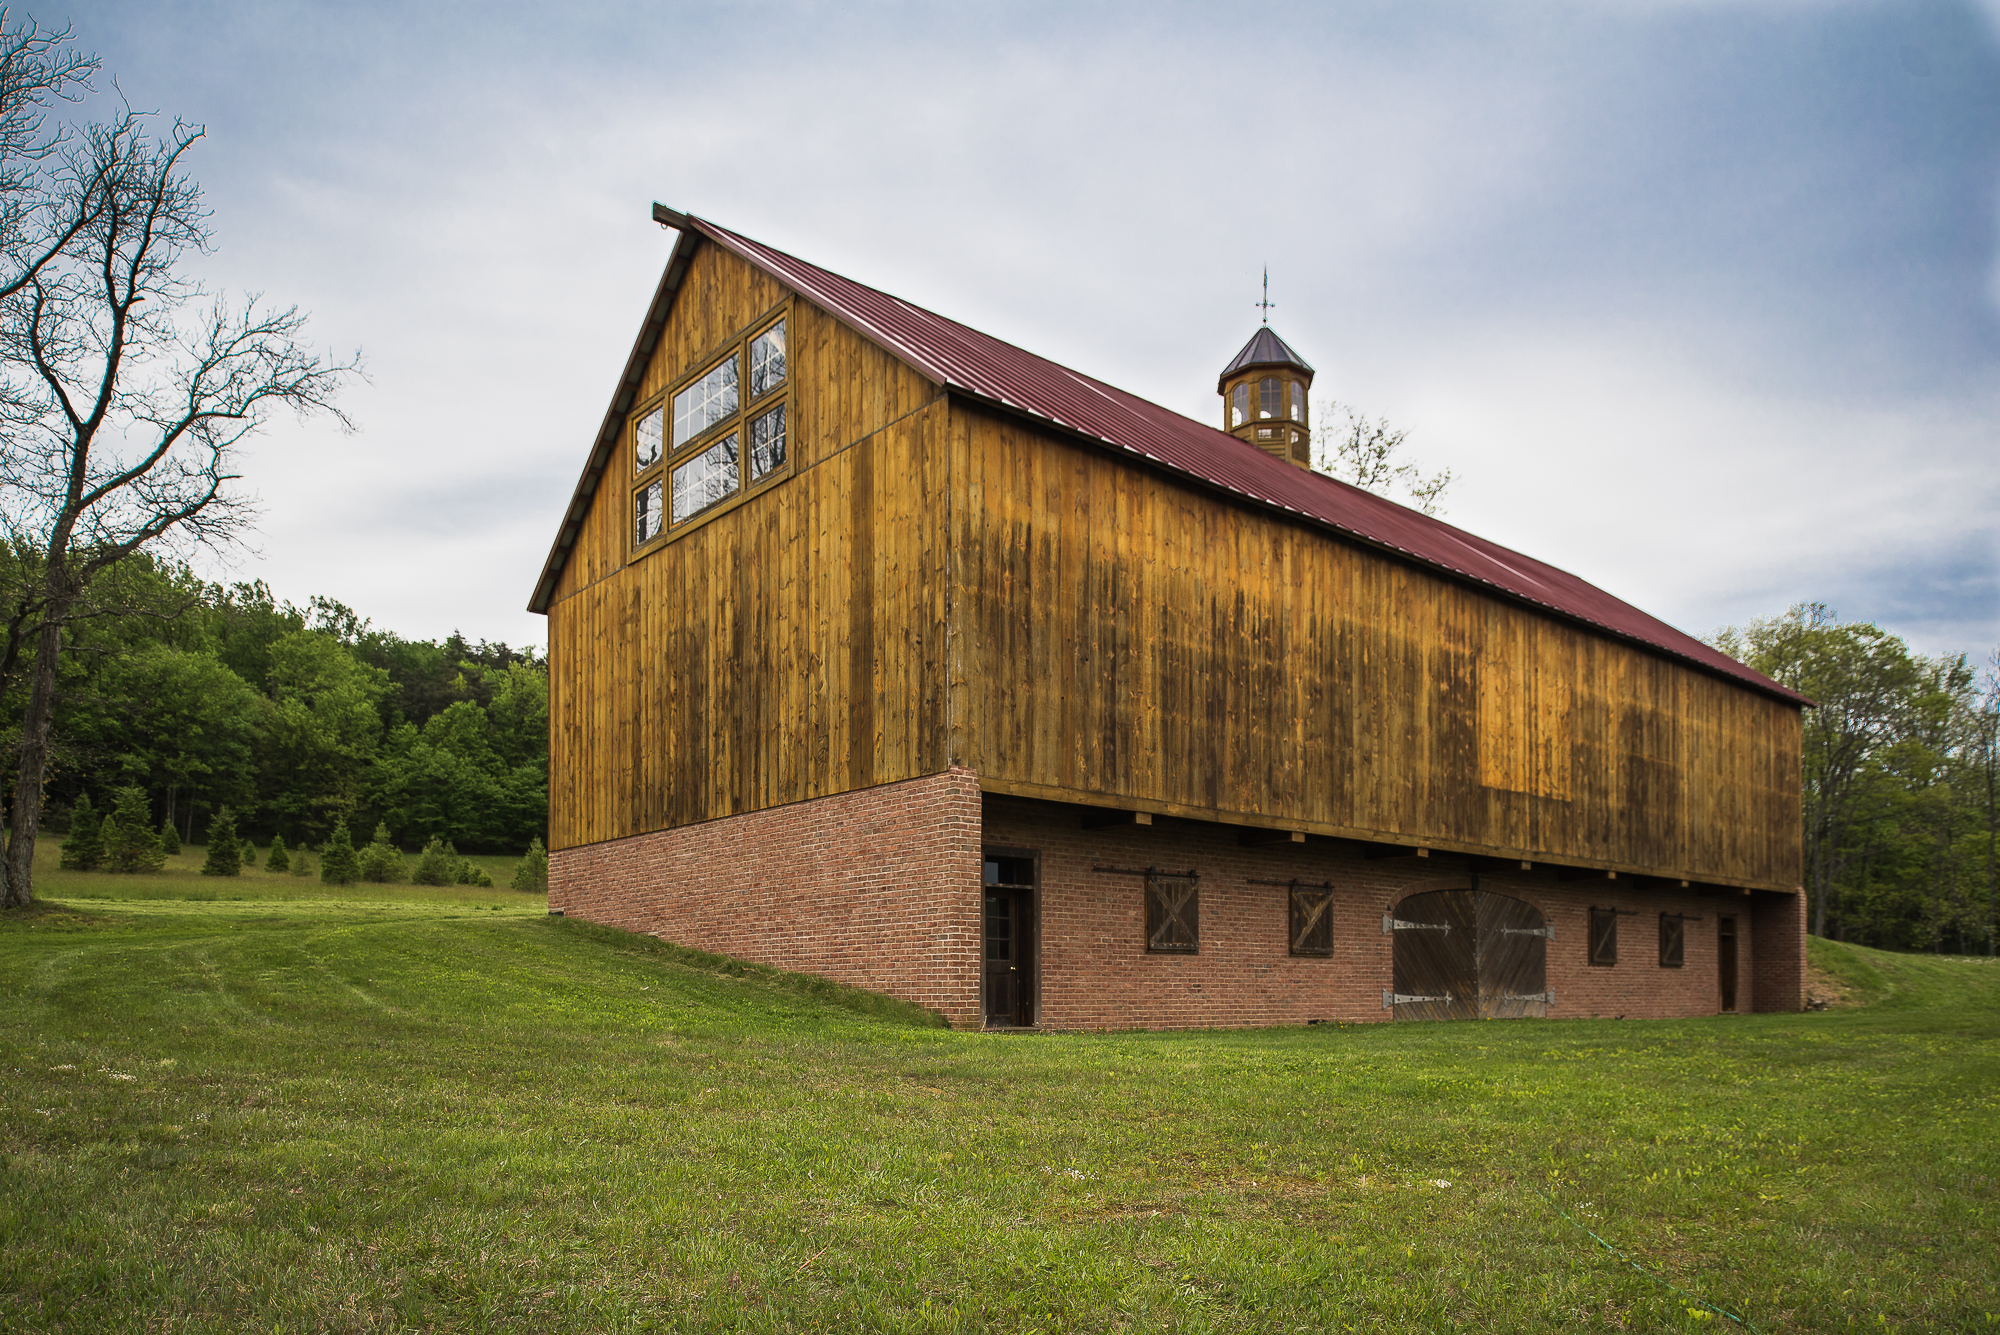 timber frame barn - photo #12